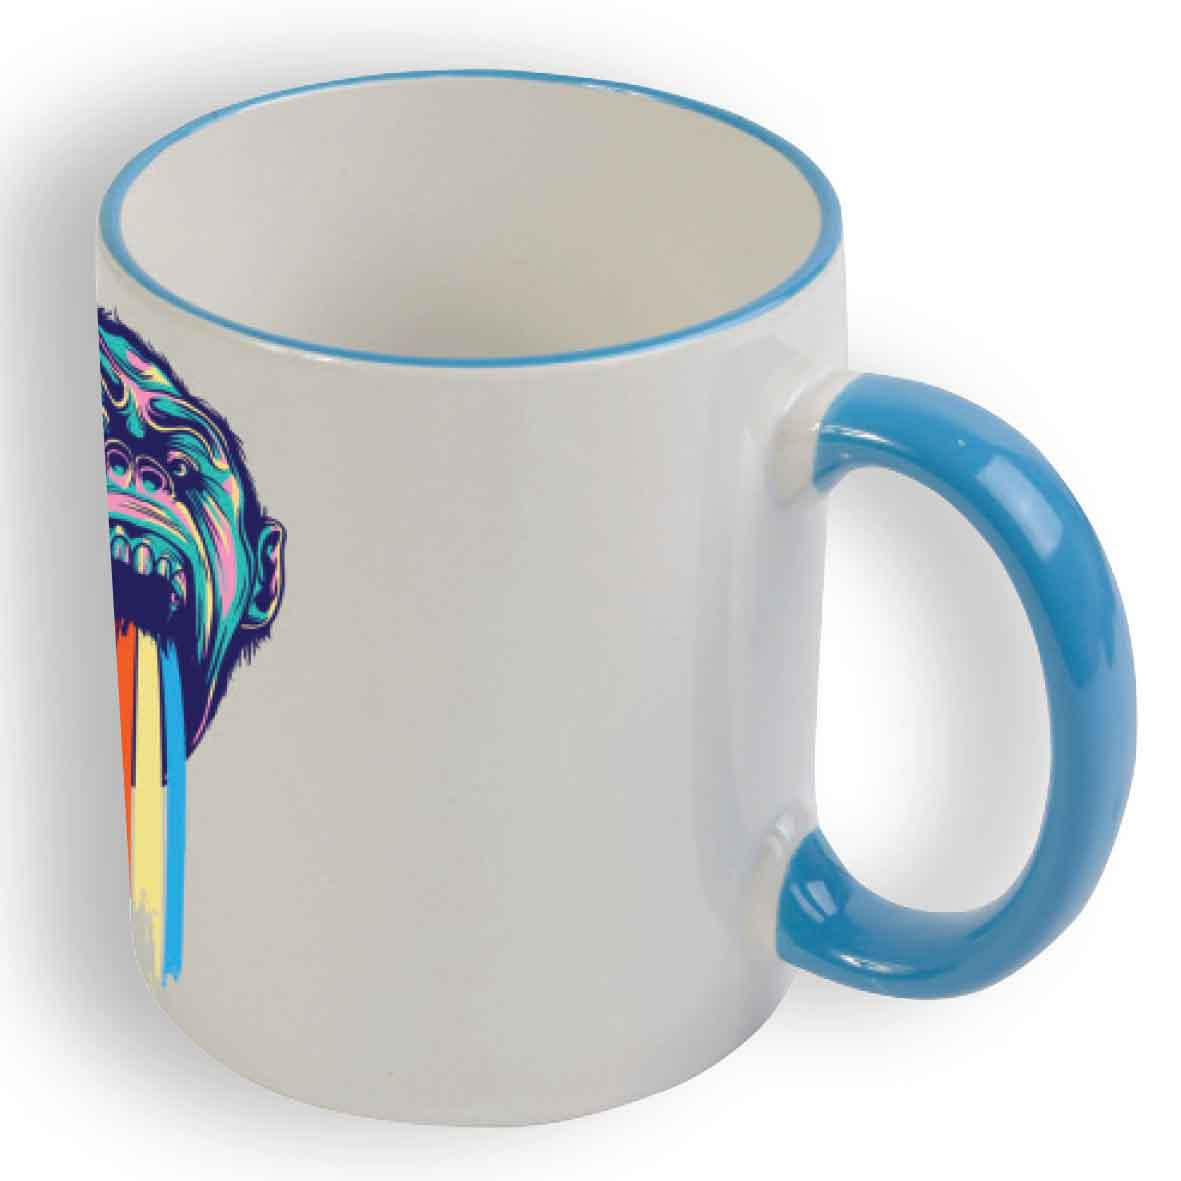 Sublimation mug 330 ml - Sky Blue sip-16433s15 subl